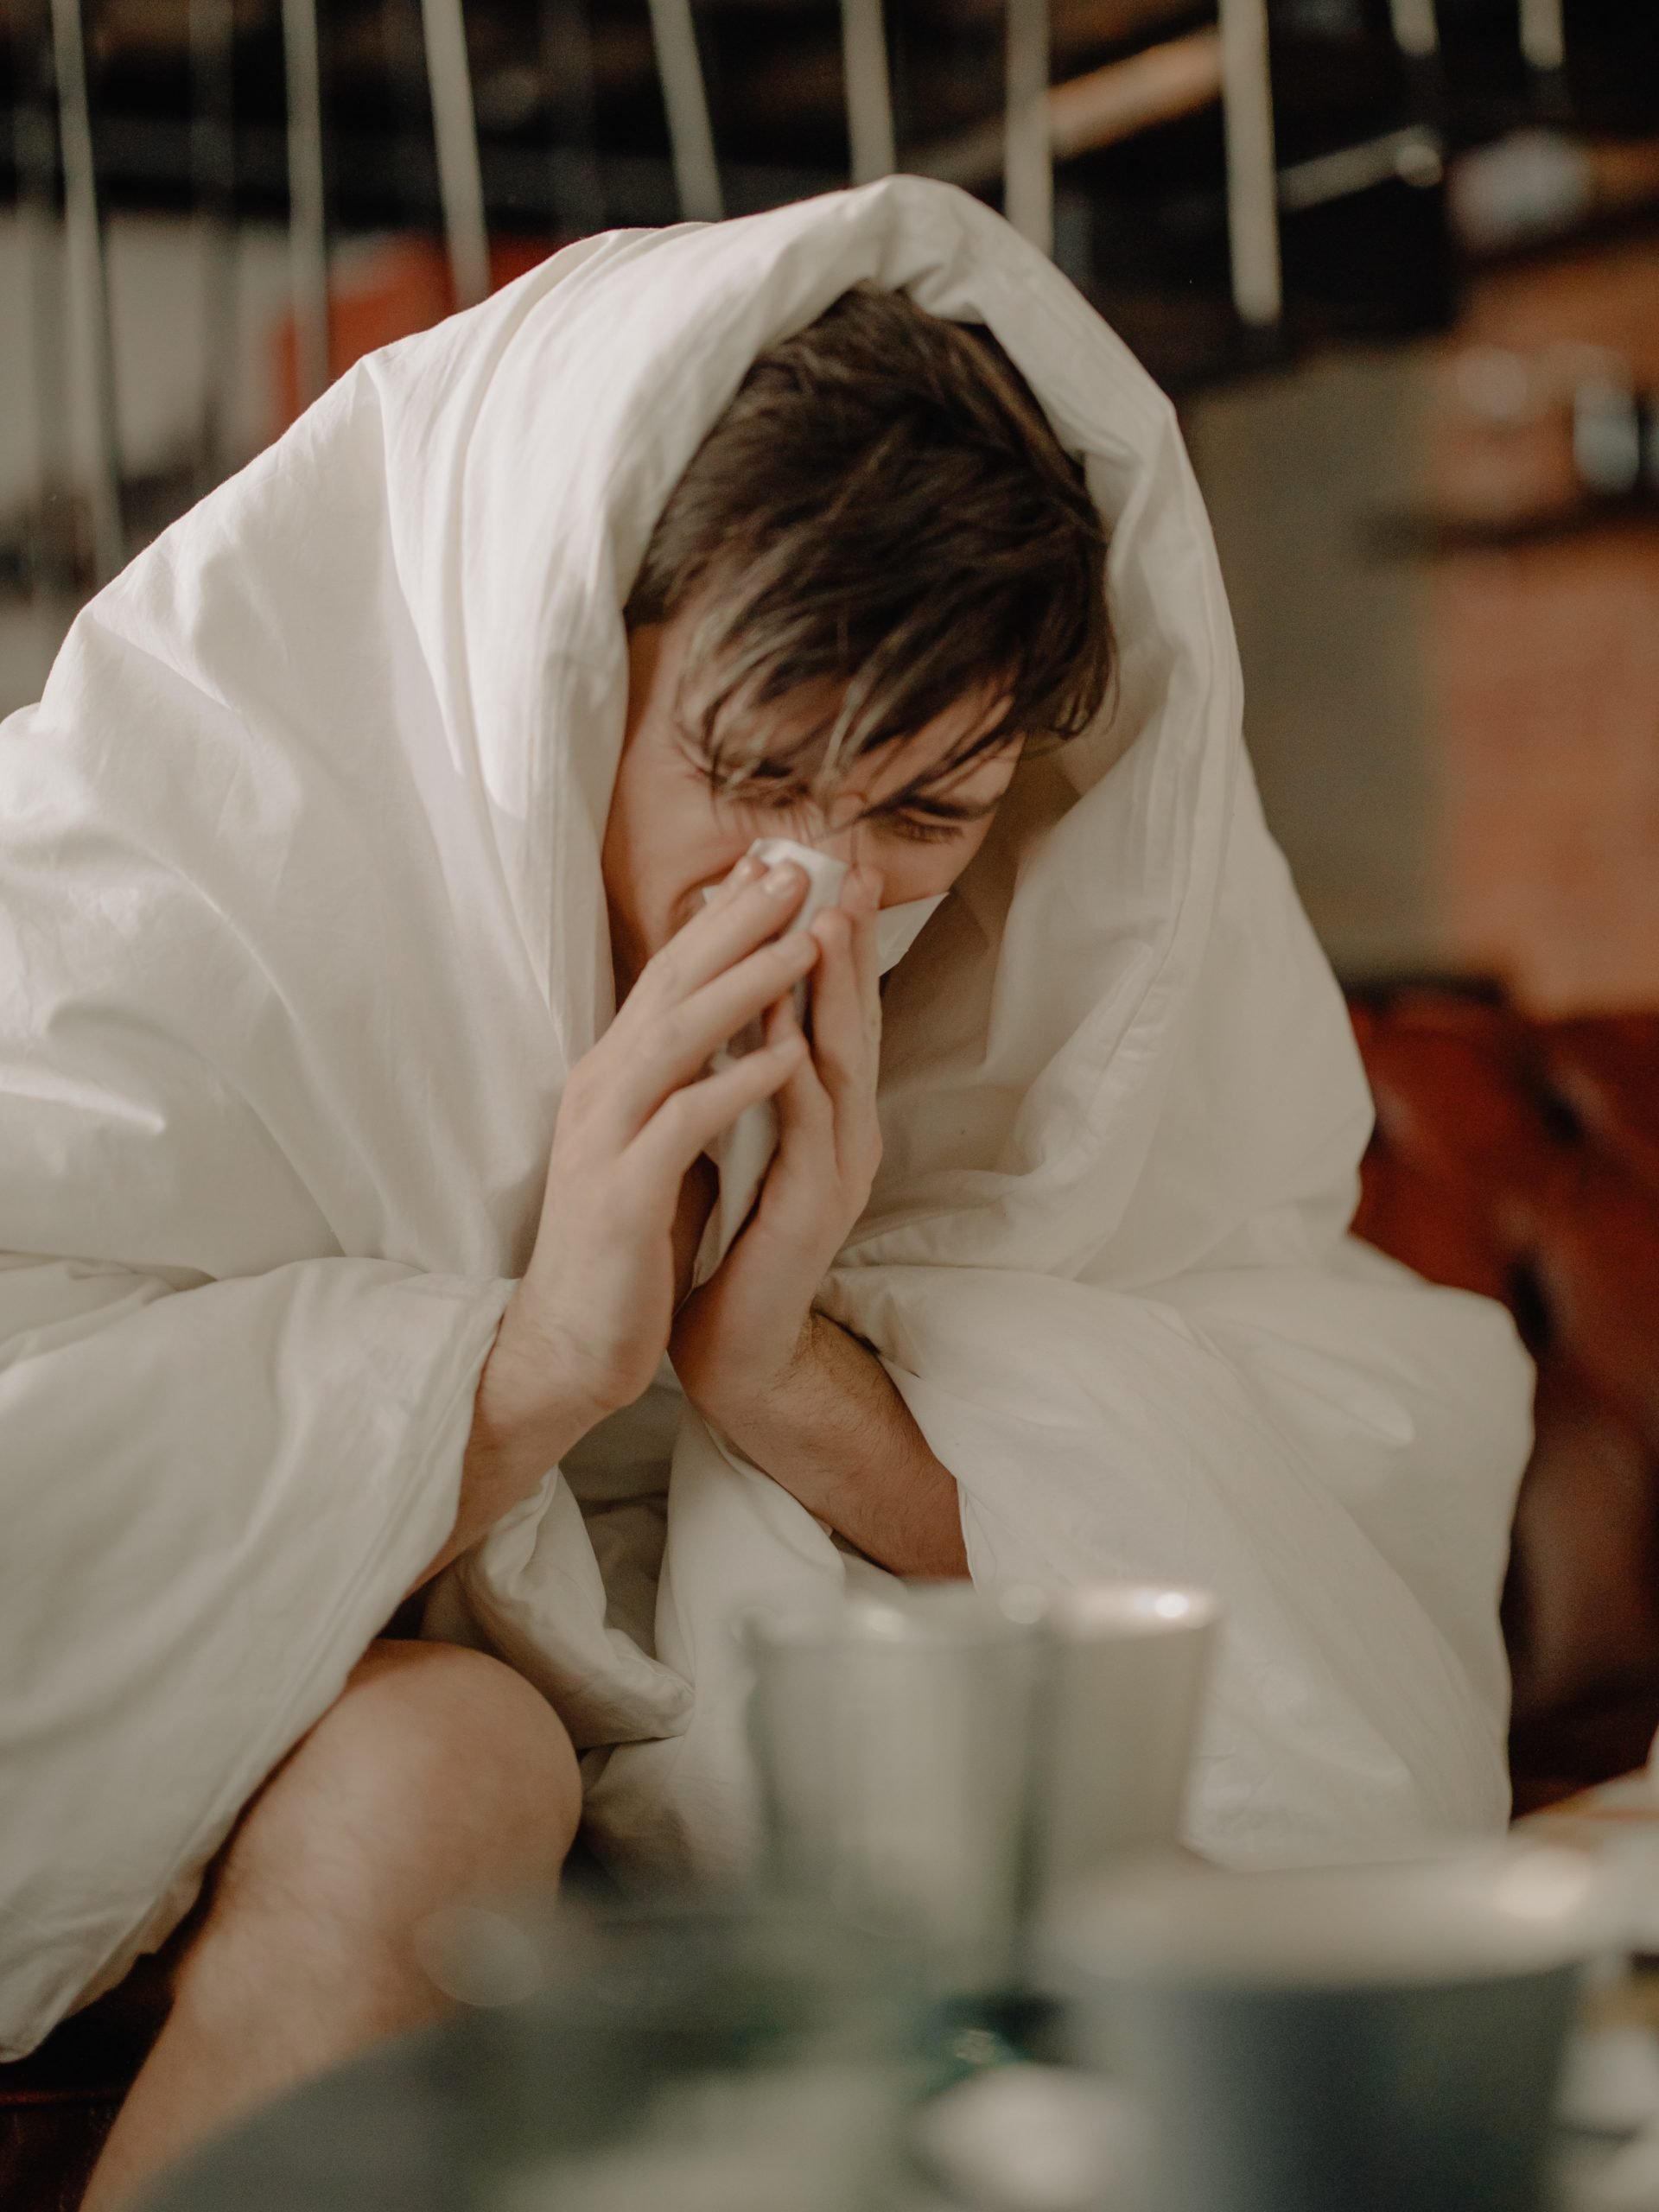 sick man wearing a blanket and blowing his nose